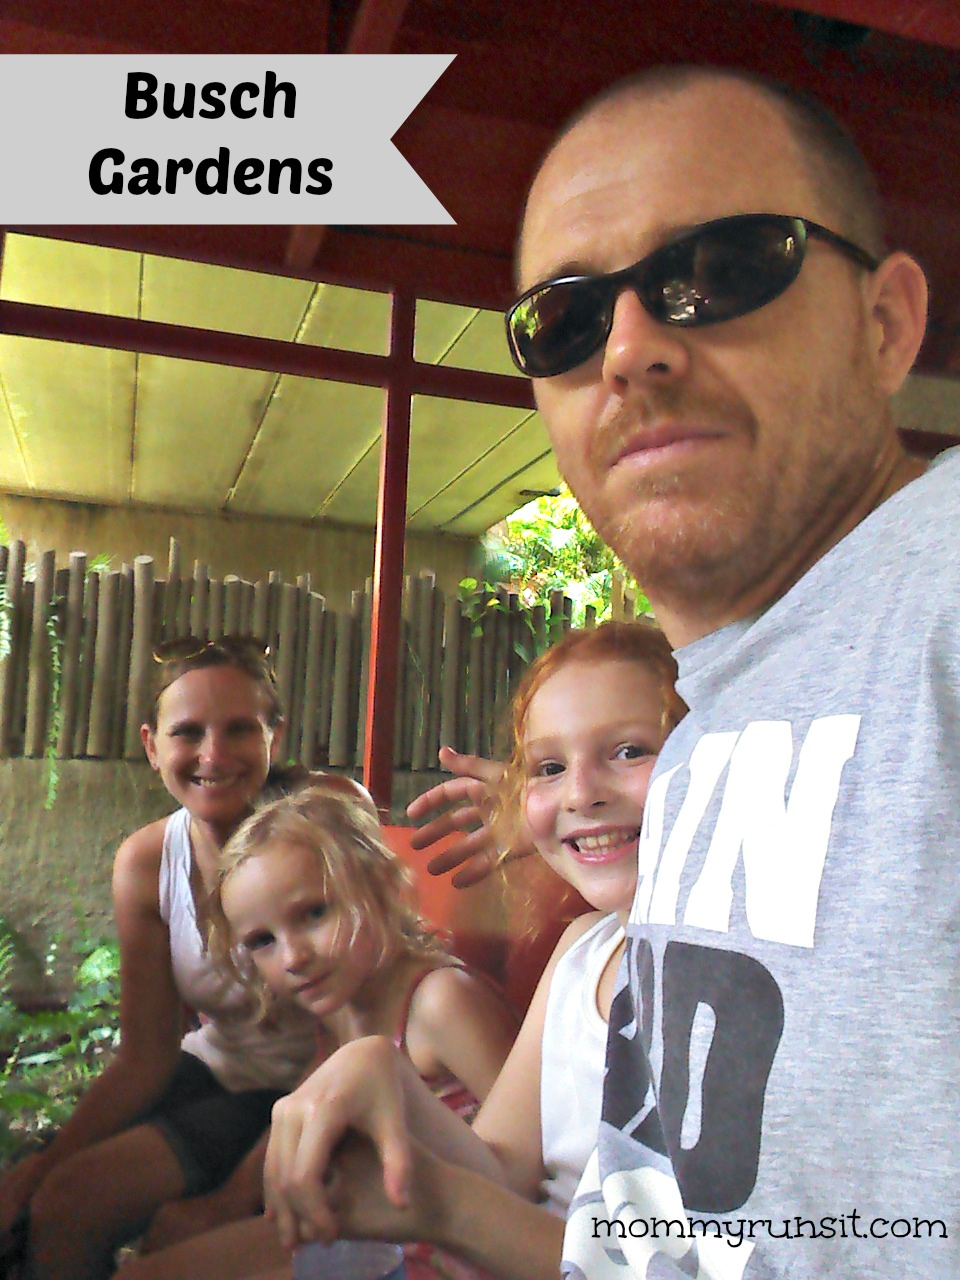 Visiting Theme Parks with Kids |Busch Gardens | Mommy Runs It #travel